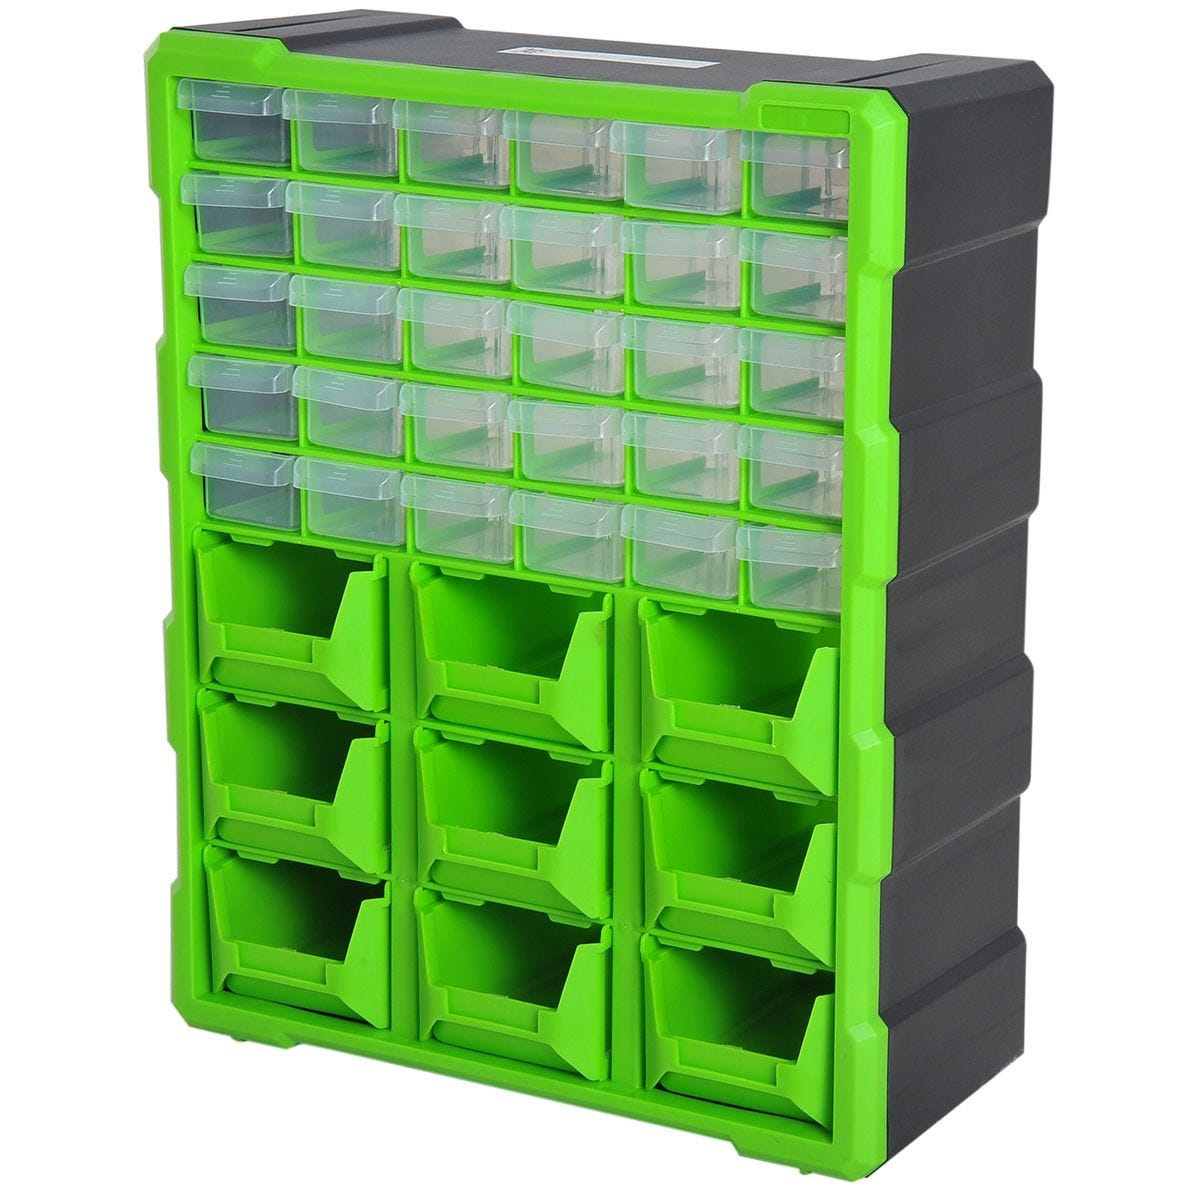 Durhand 39 Drawer Parts Organiser Wall Mount Storage Cabinet - Green